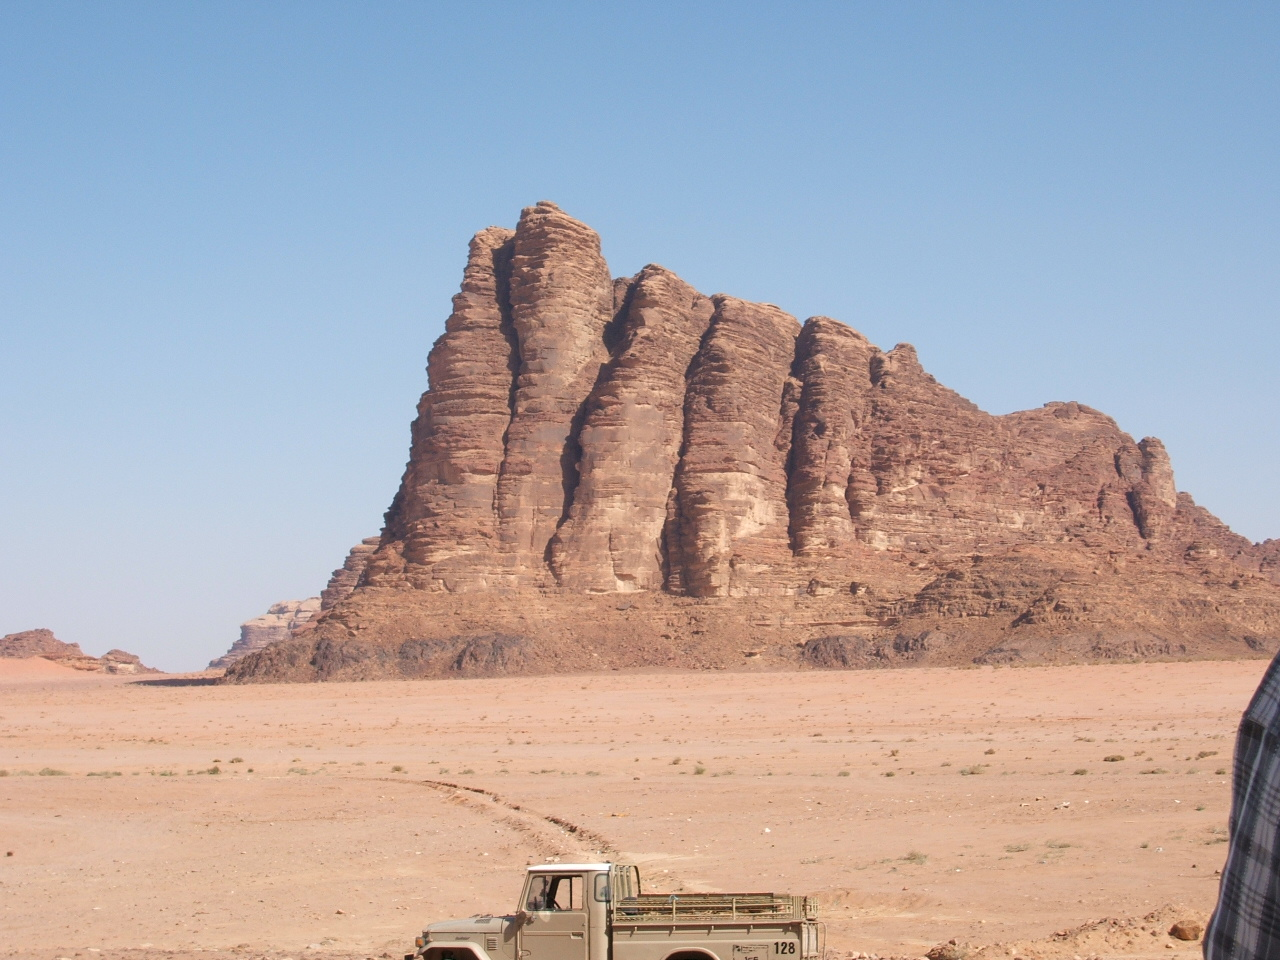 Wadi Rum Approach - Five of the Seven Pillars of Wisdom (Lawrence of Arabia) at the entrance